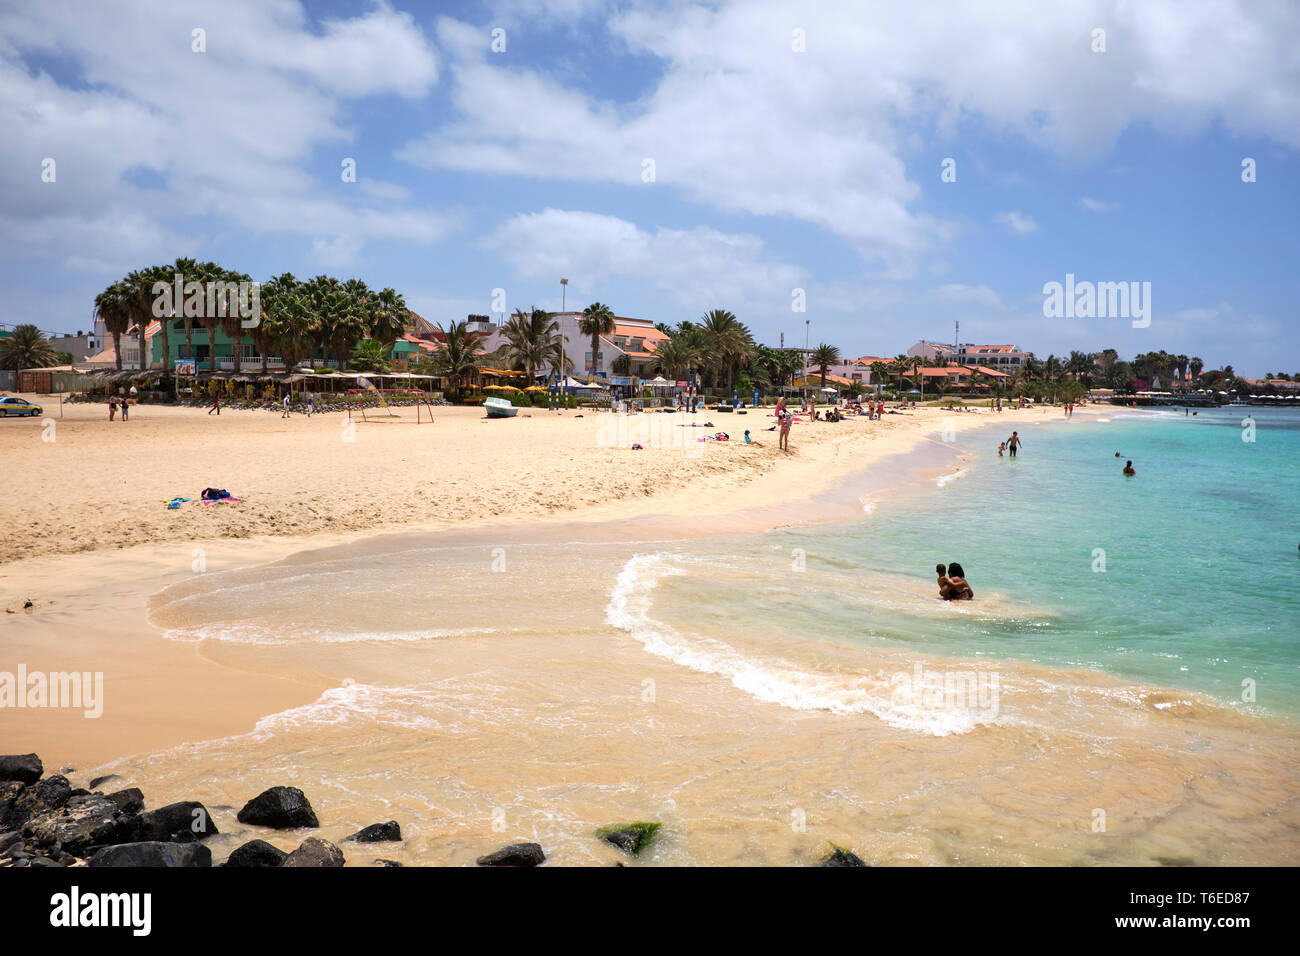 Santa Maria Beach, Sal Island, Cape Verde, Africa Stock Photo